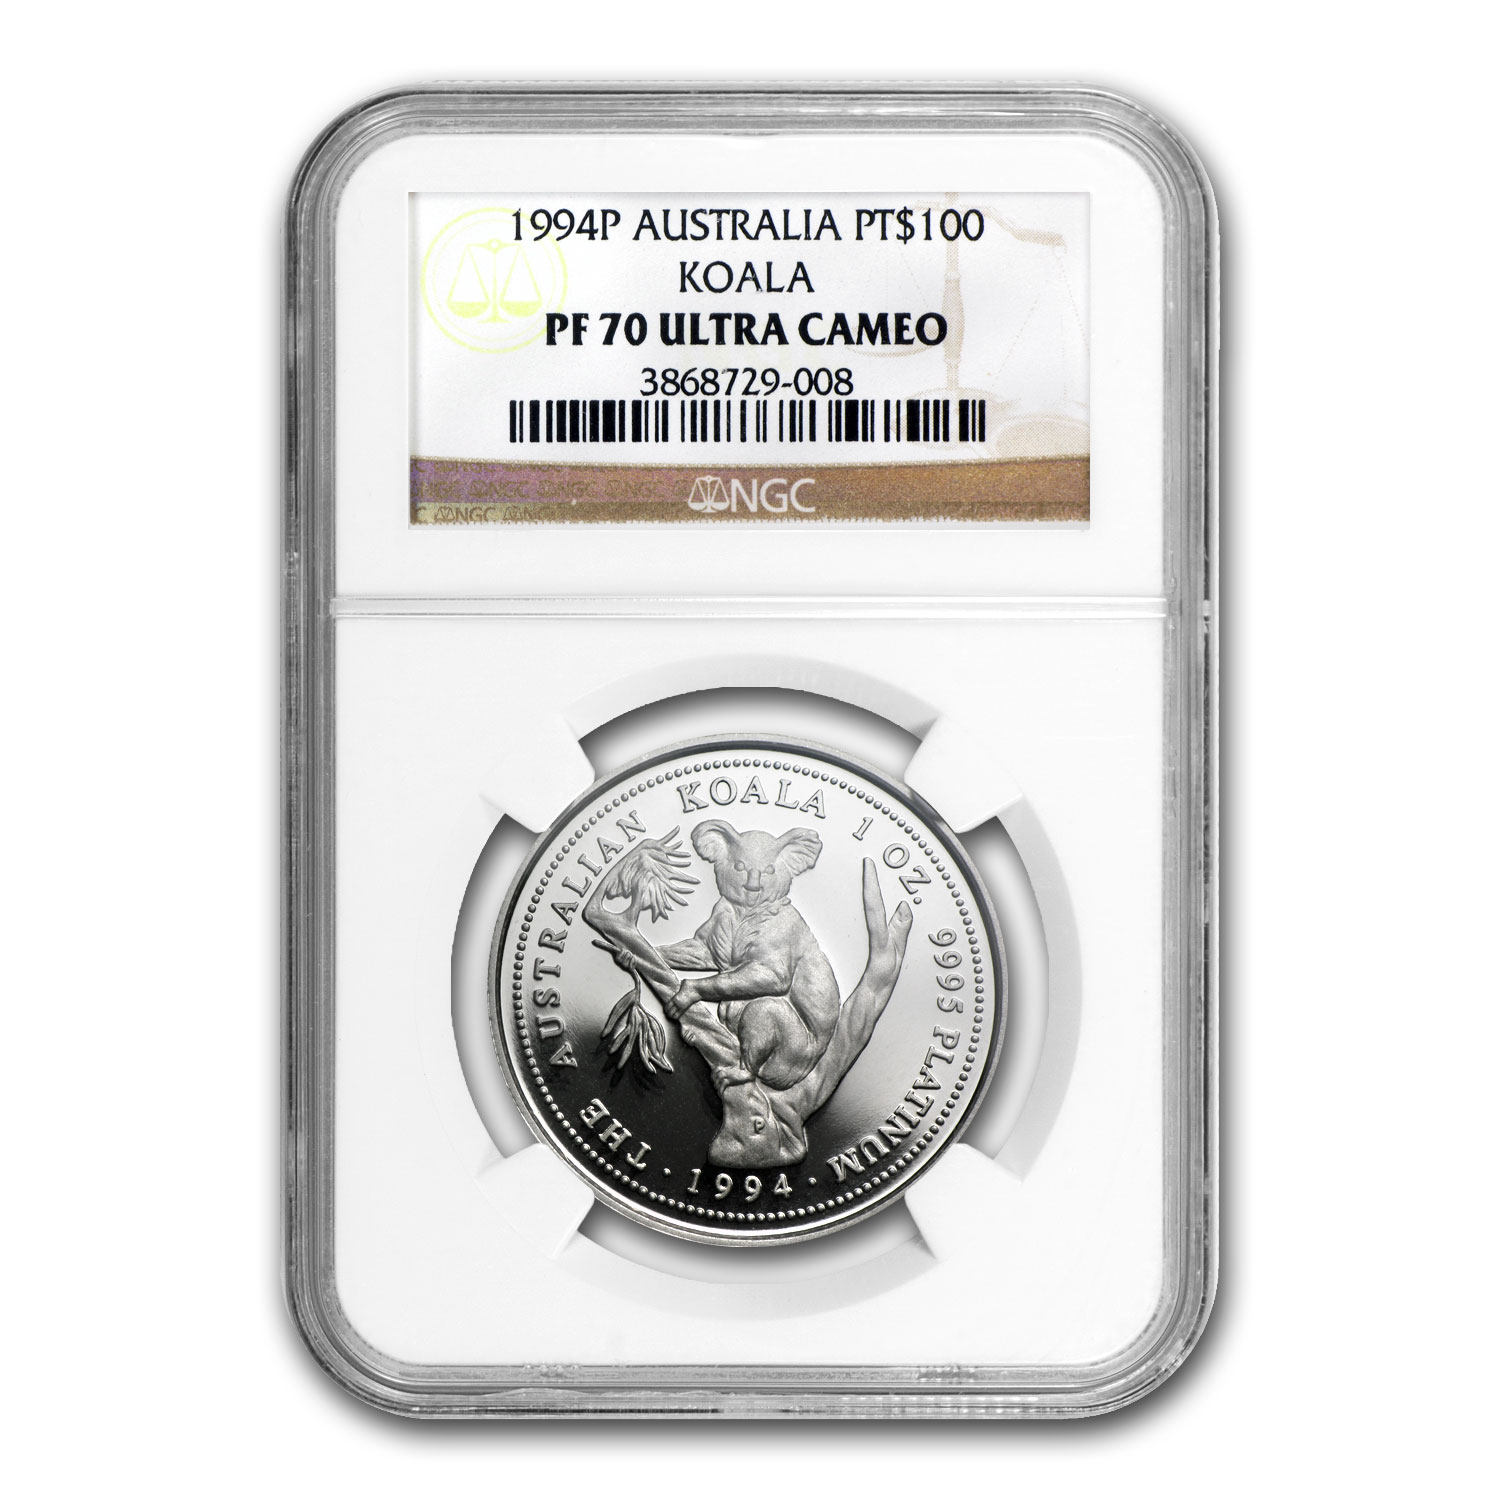 1994 Australia 1 oz Proof Platinum Koala PF-70 NGC